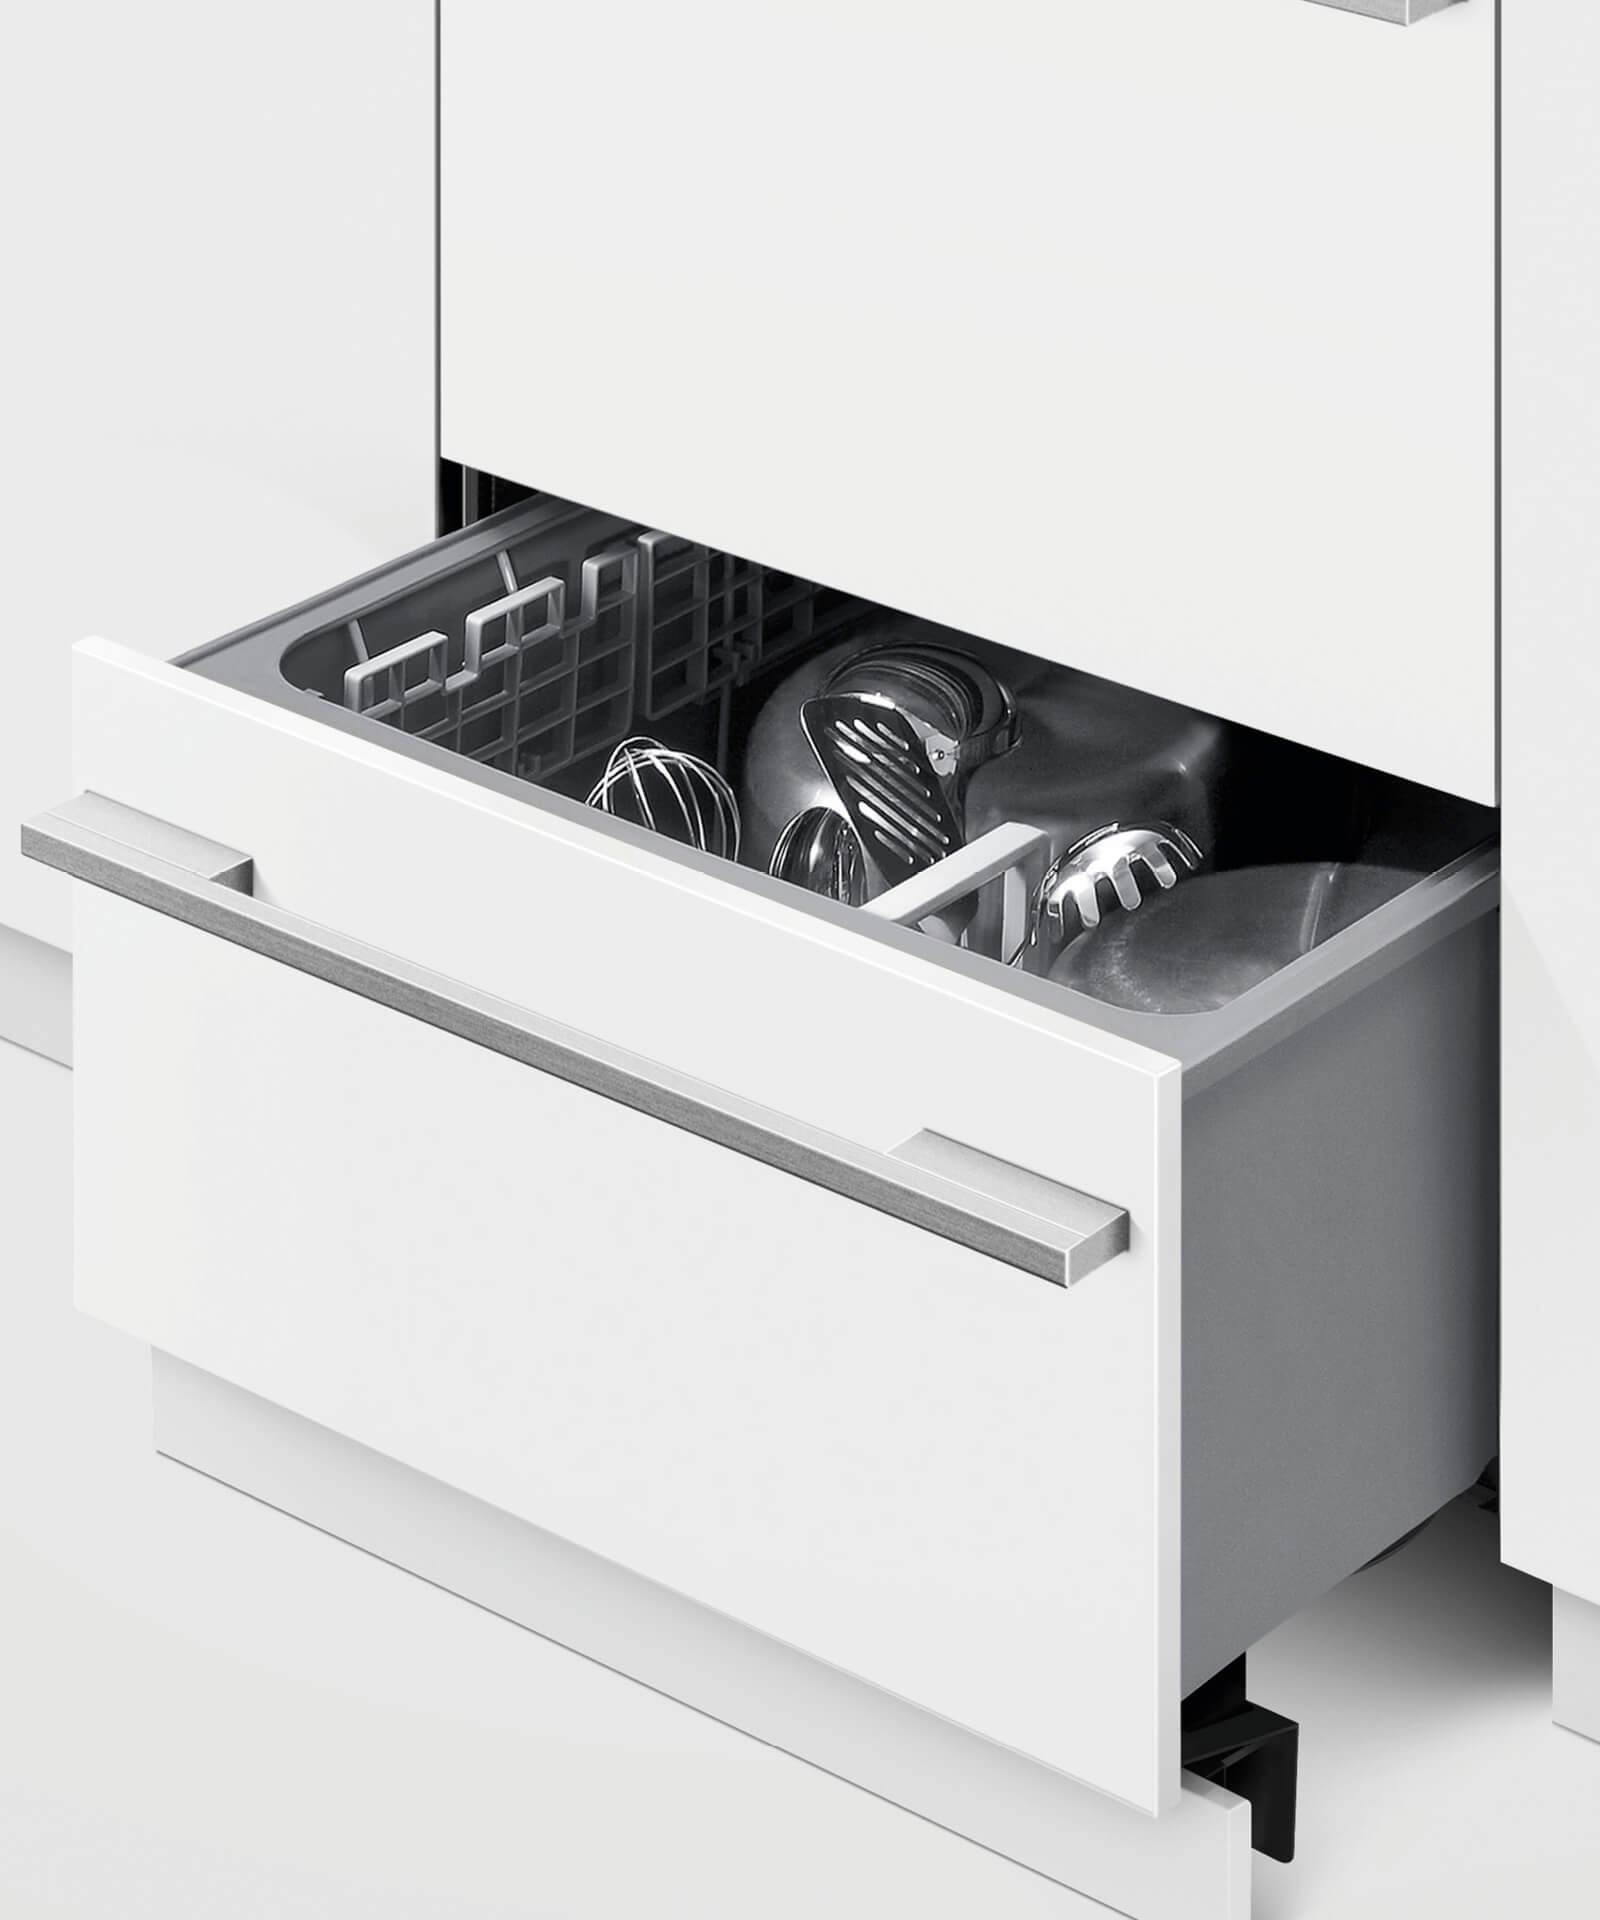 fisher paykel dishwasher dd24dhti9 n panel ready dishdrawer 29916